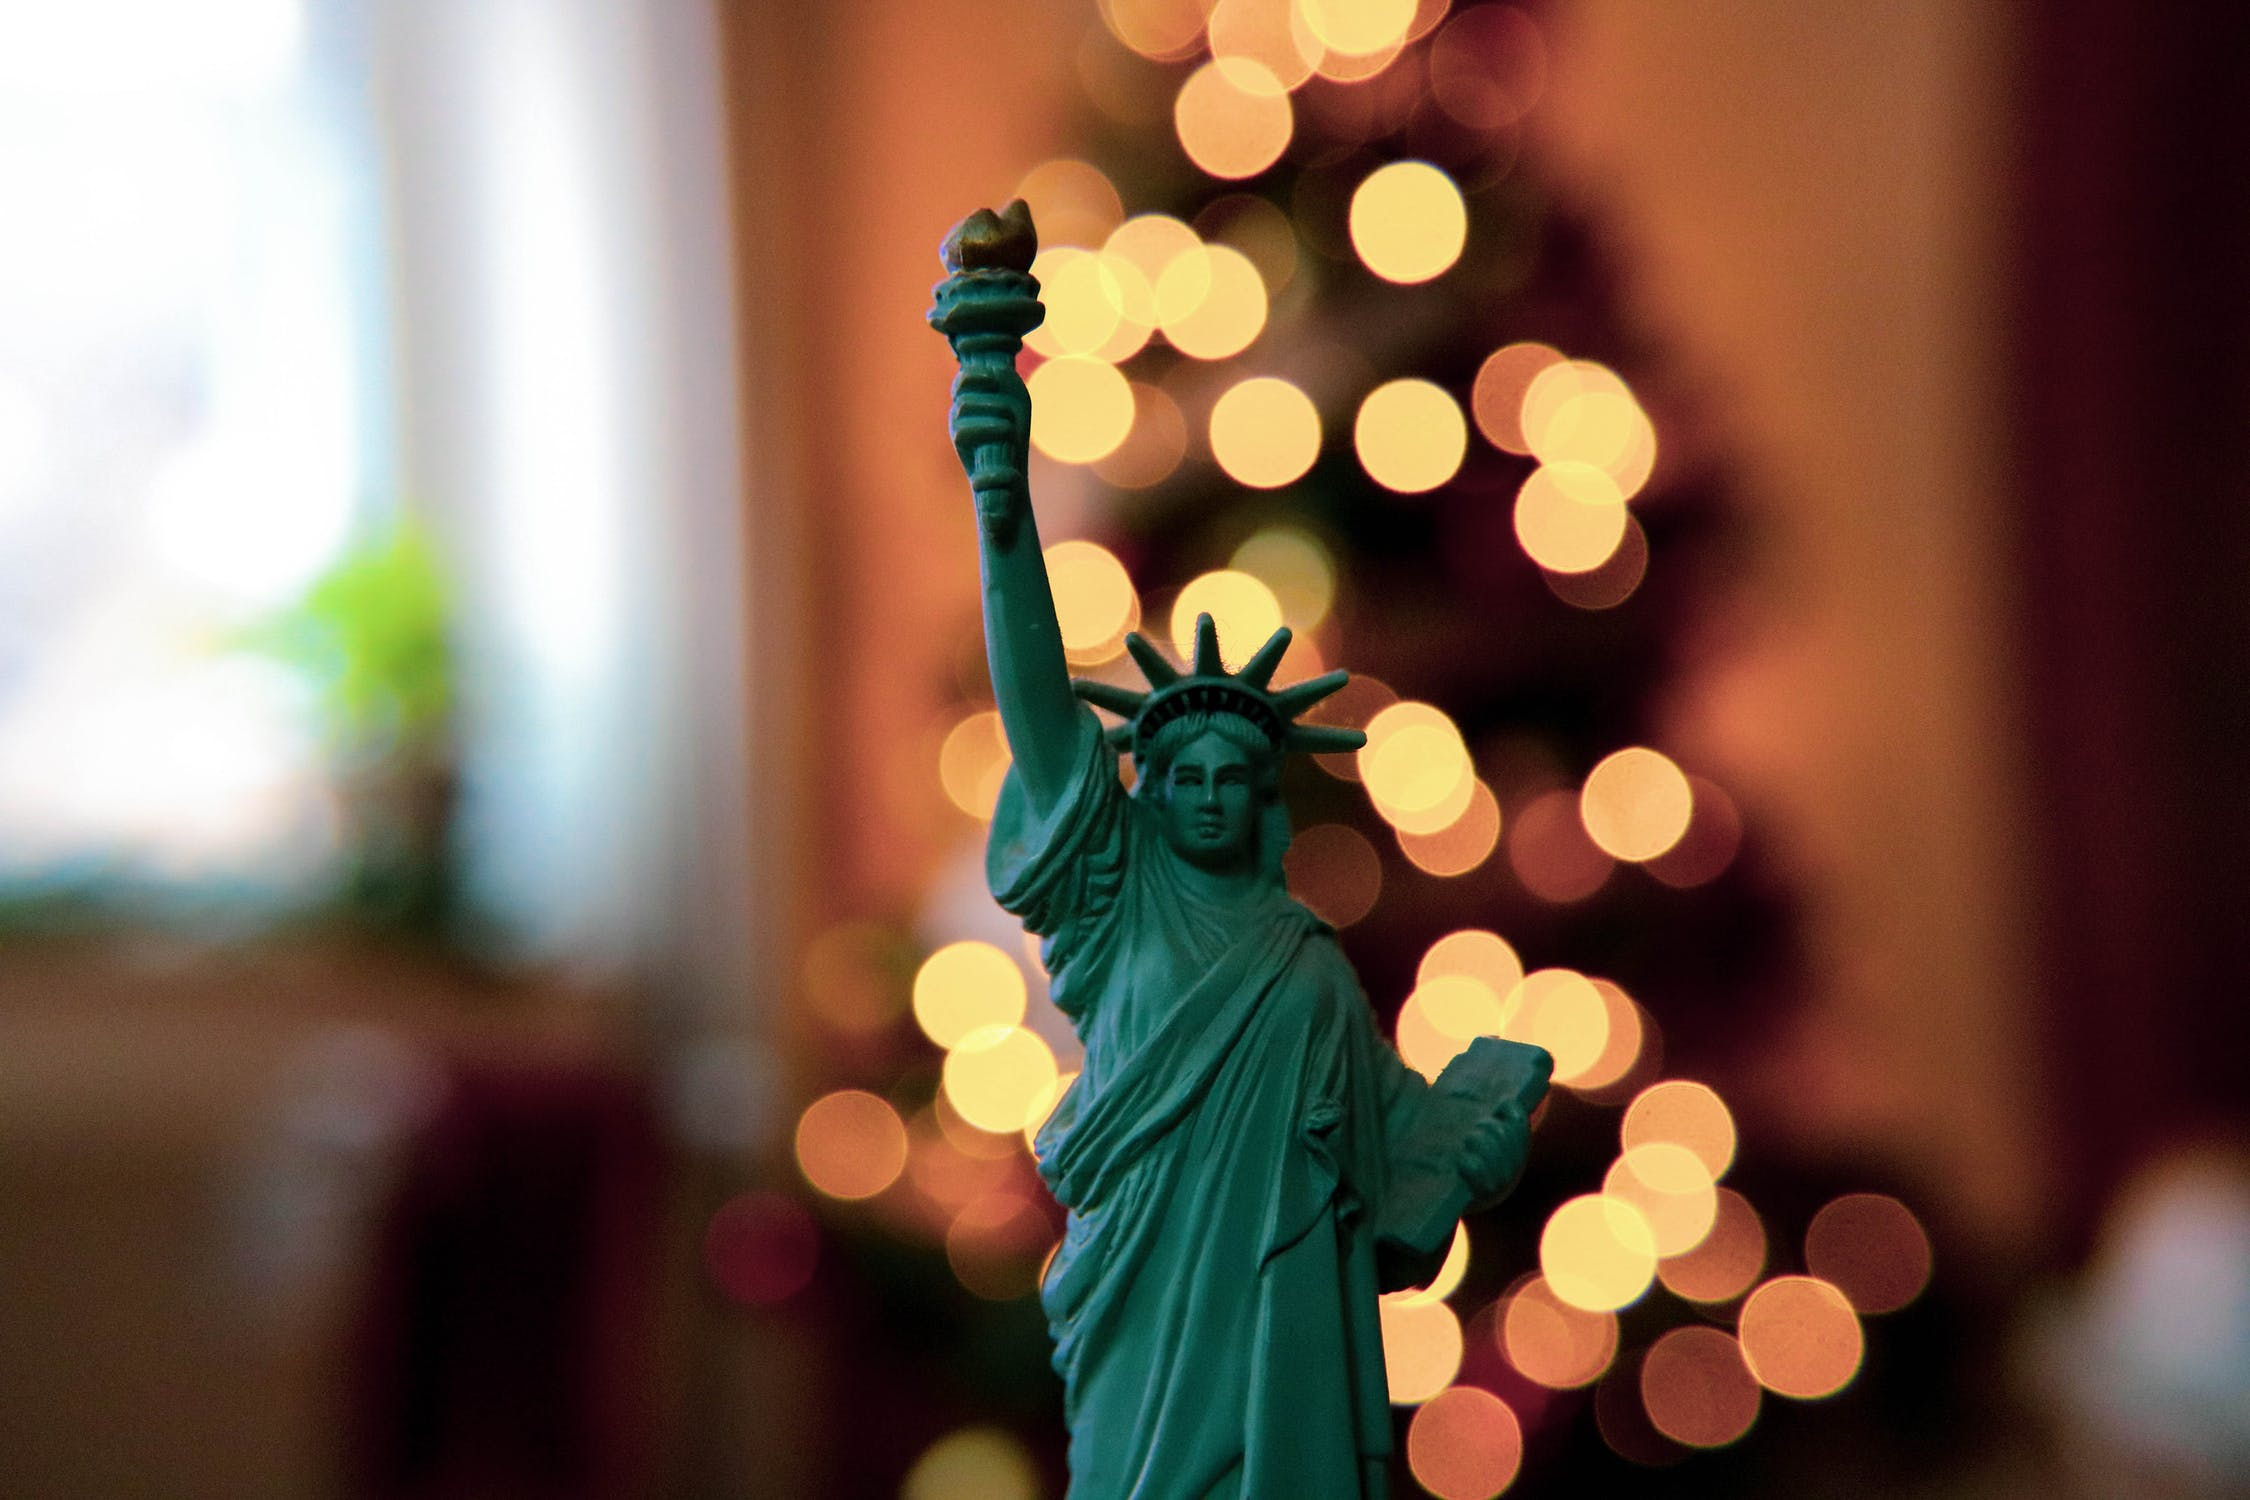 Miniature Statue of Liberty with Lights